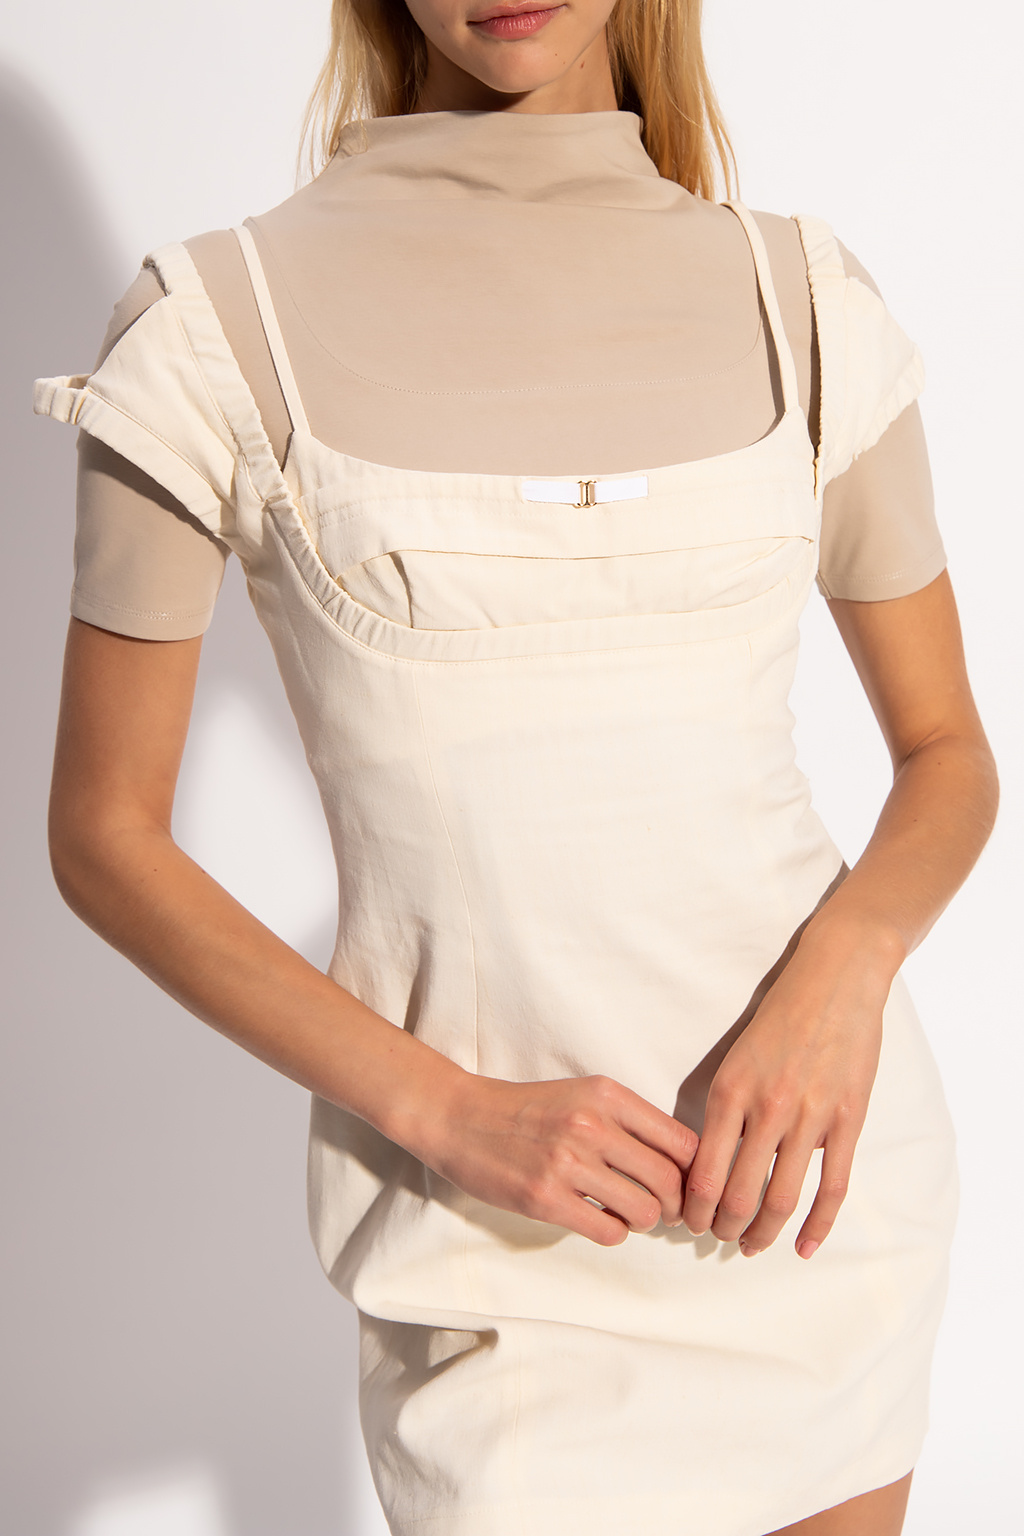 Jacquemus Top with cut-out back